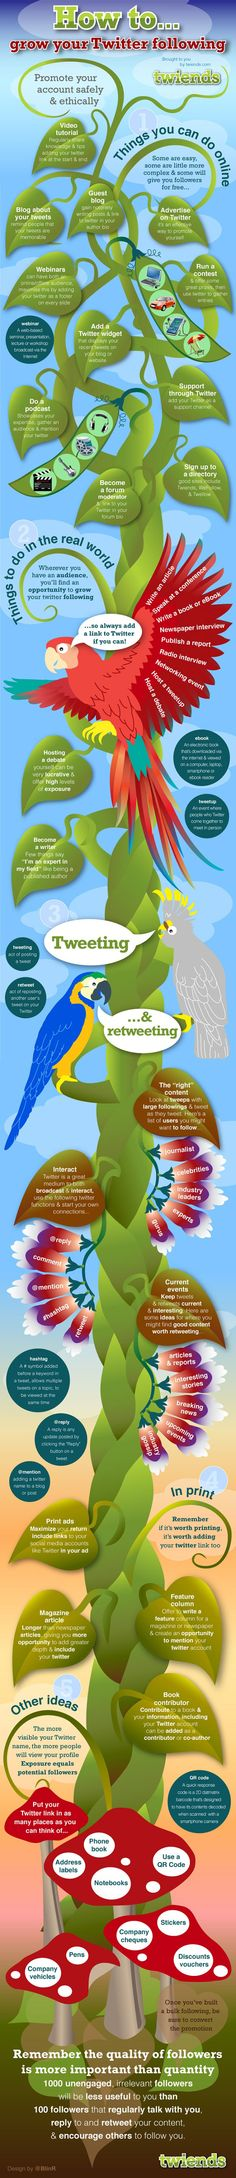 How to grow your Twitter following - #infographic